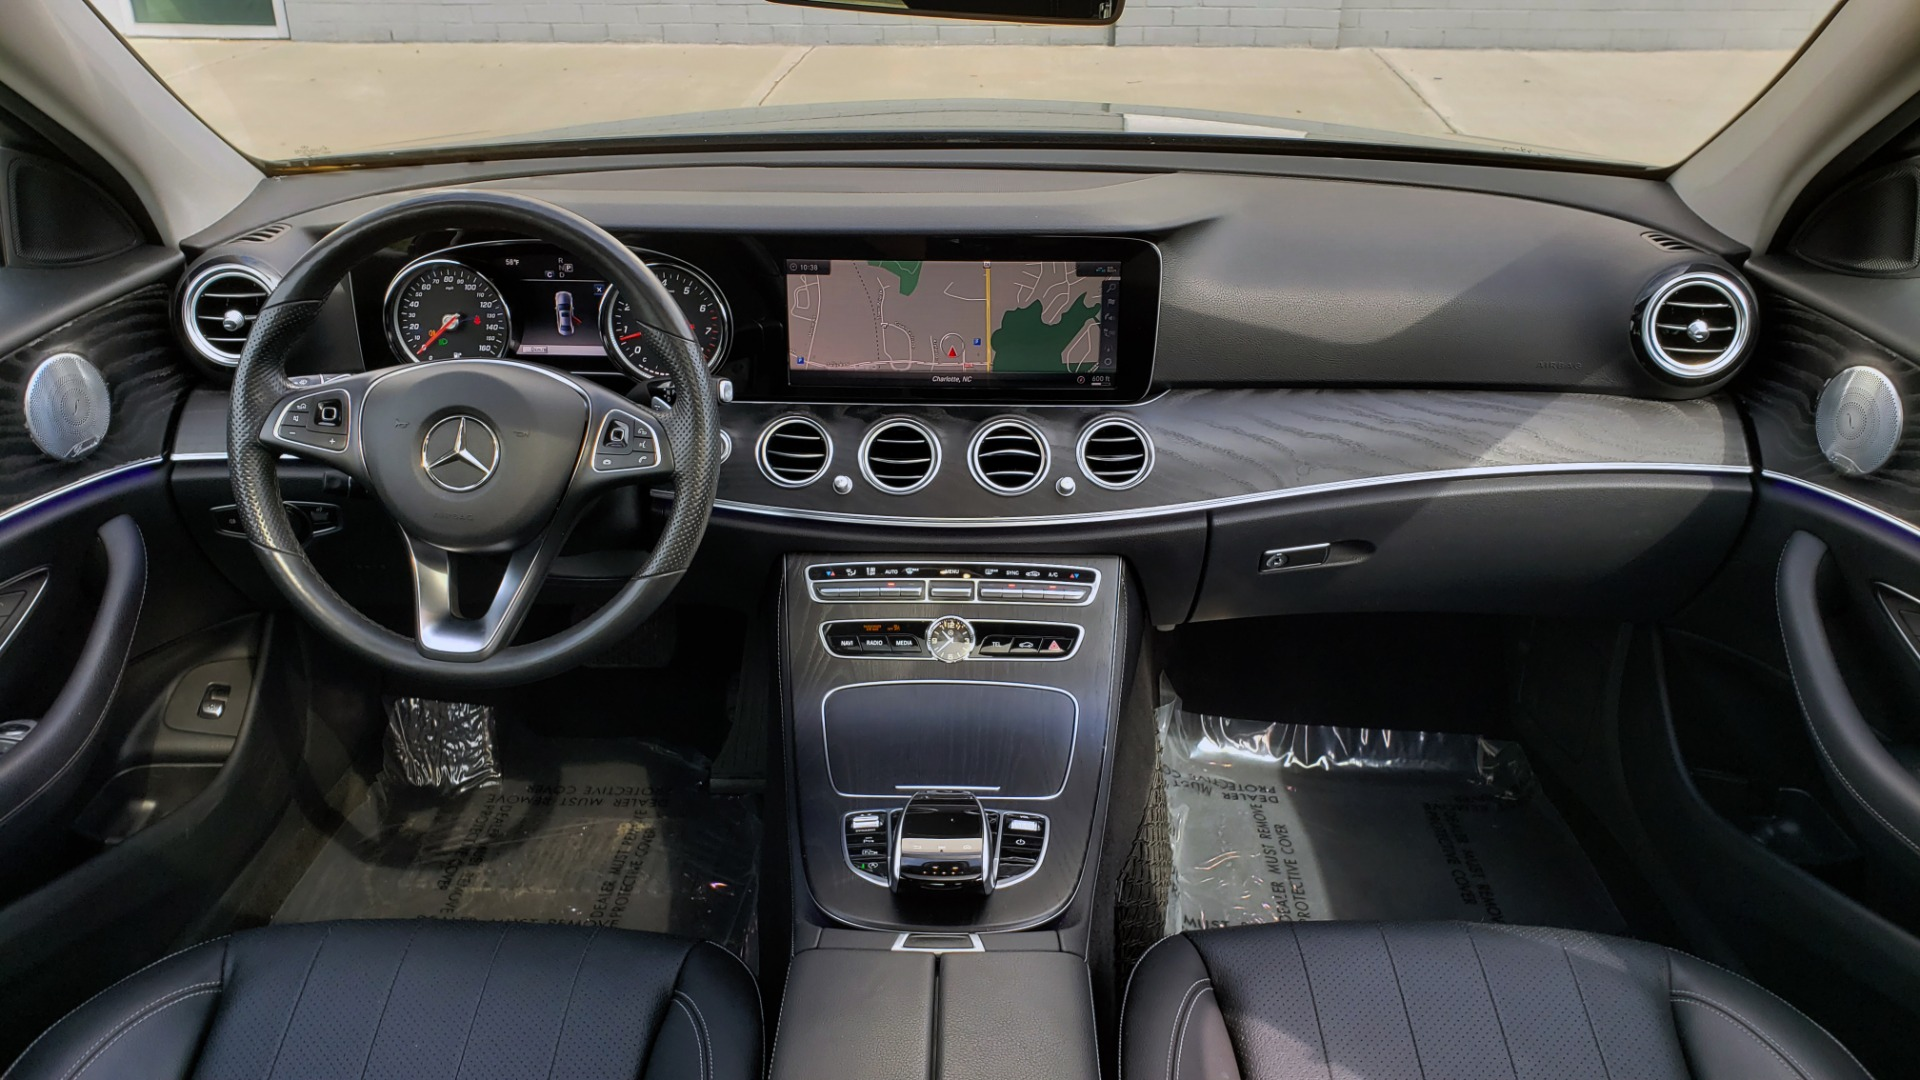 Used 2018 Mercedes-Benz E-CLASS E 300 PREMIUM / 4MATIC / NAV / SUNROOF / H/K SND / REARVIEW for sale $34,195 at Formula Imports in Charlotte NC 28227 69